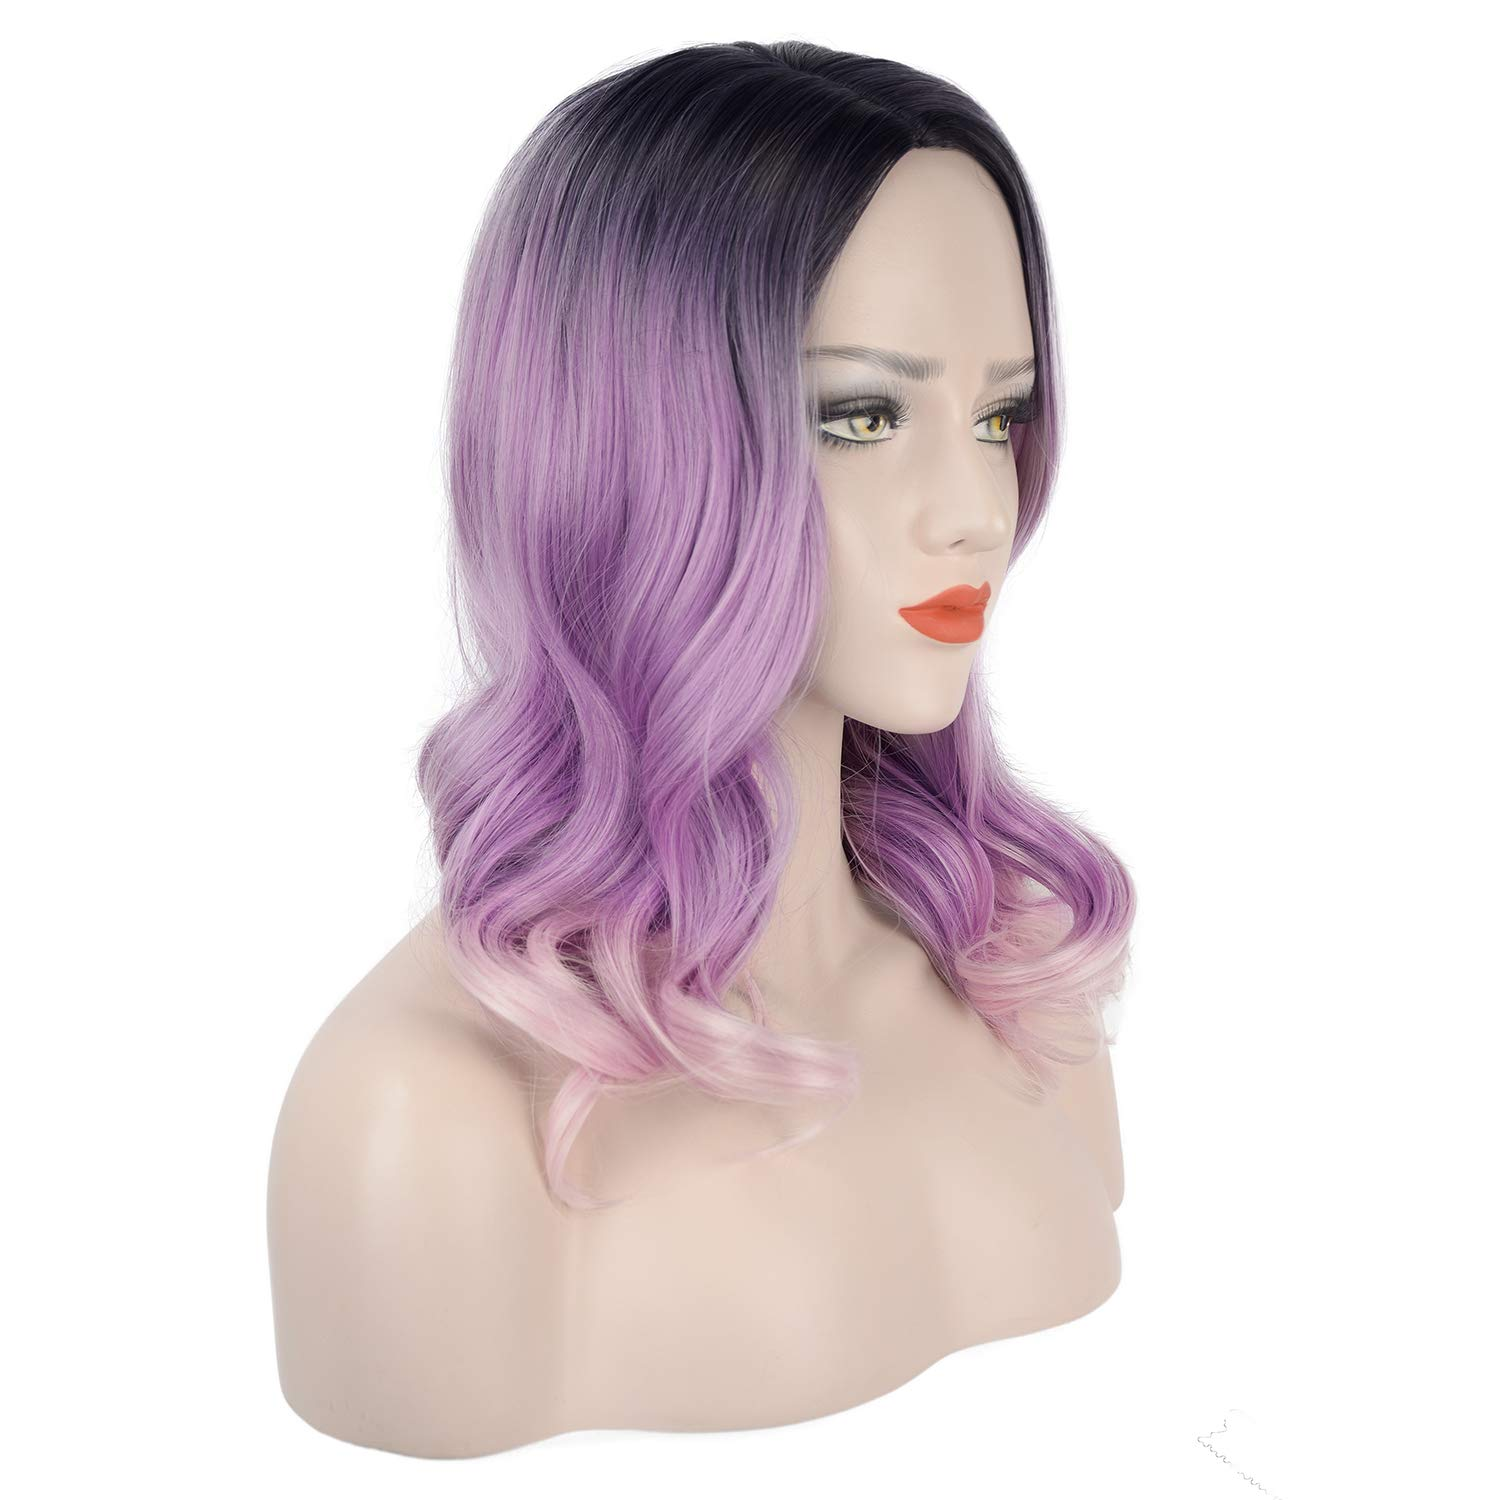 FESHFEN Long Natural Curly Wavy Synthetic Wigs Ombre Lilac to Light Pink Wig with Dark Roots Right-Side Parting Heat Resistant Replacement Wig for Women 18 Inch